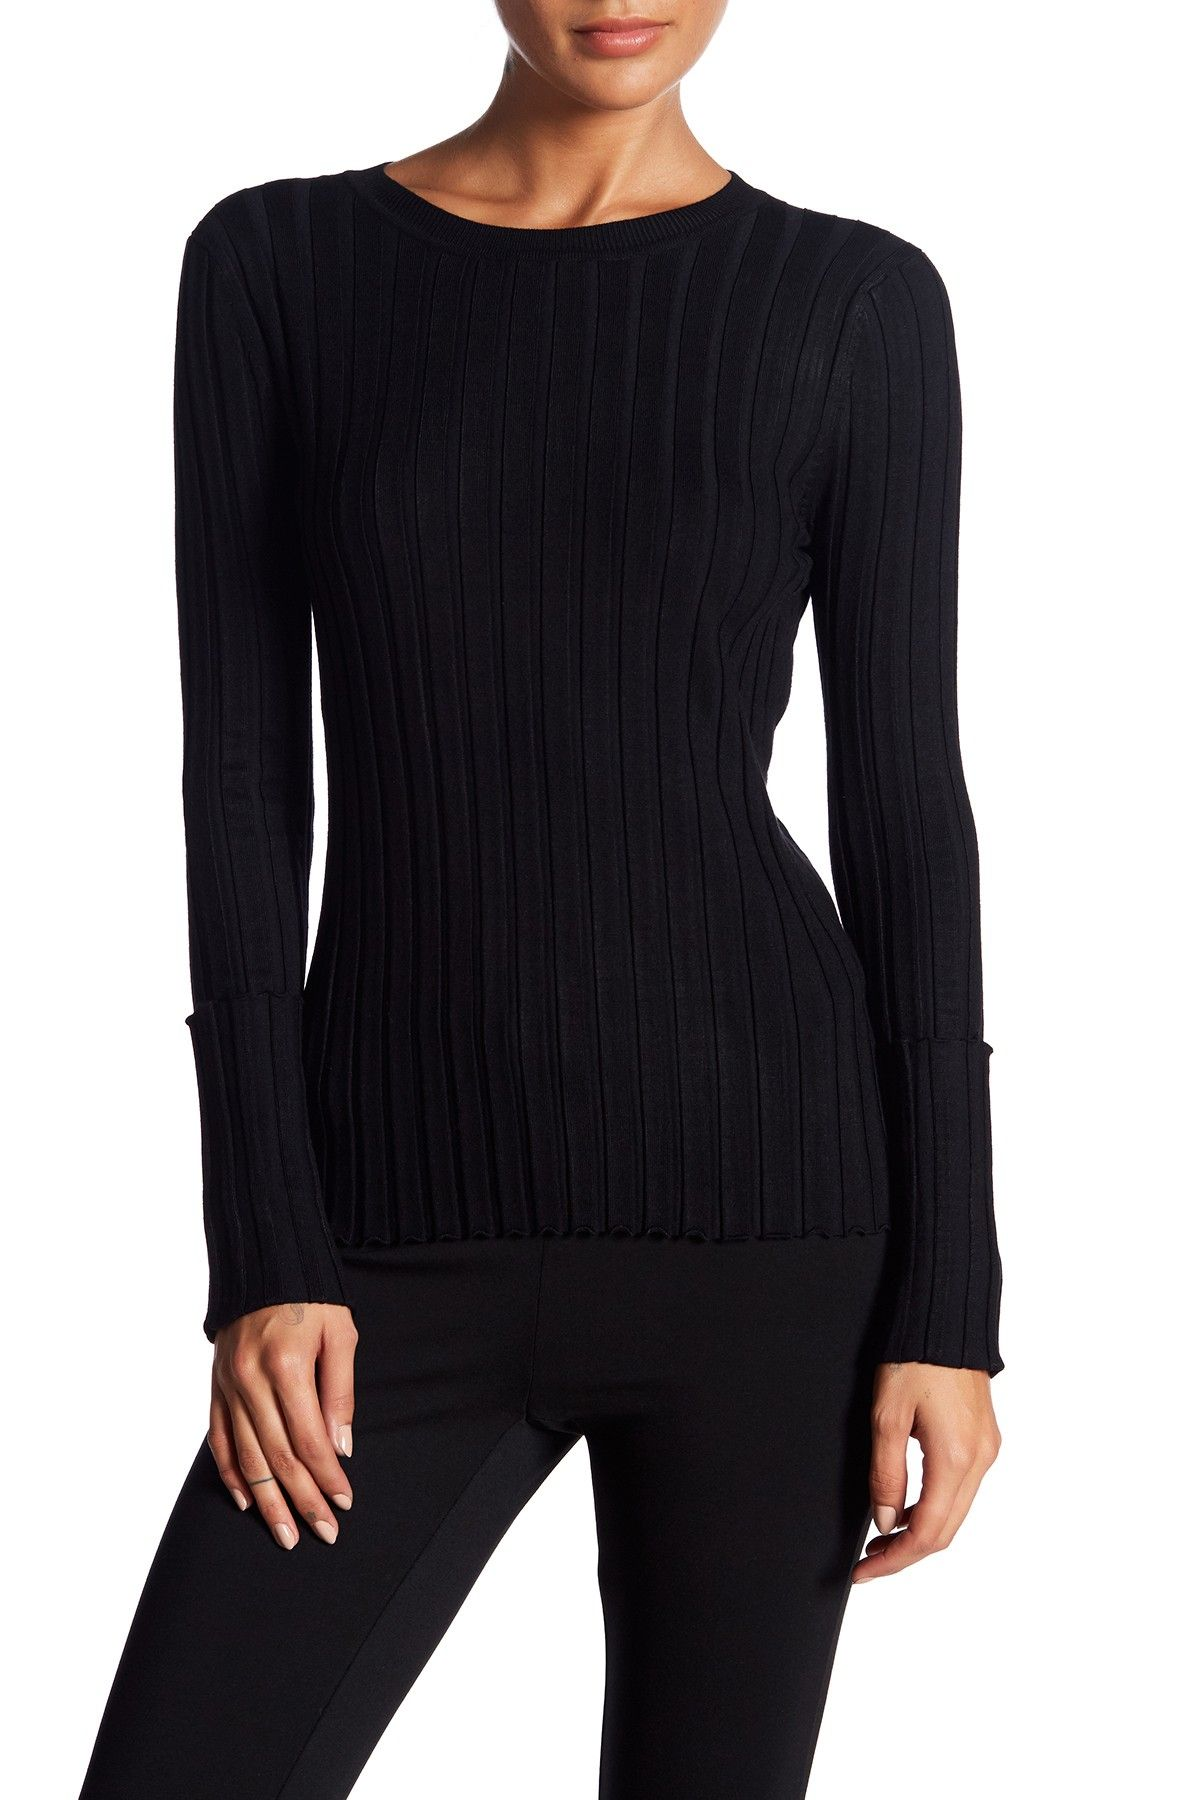 Philosophy Apparel Wide Ribbed Cuffed Sweater Nordstrom Rack Sweaters Clothes Fashion